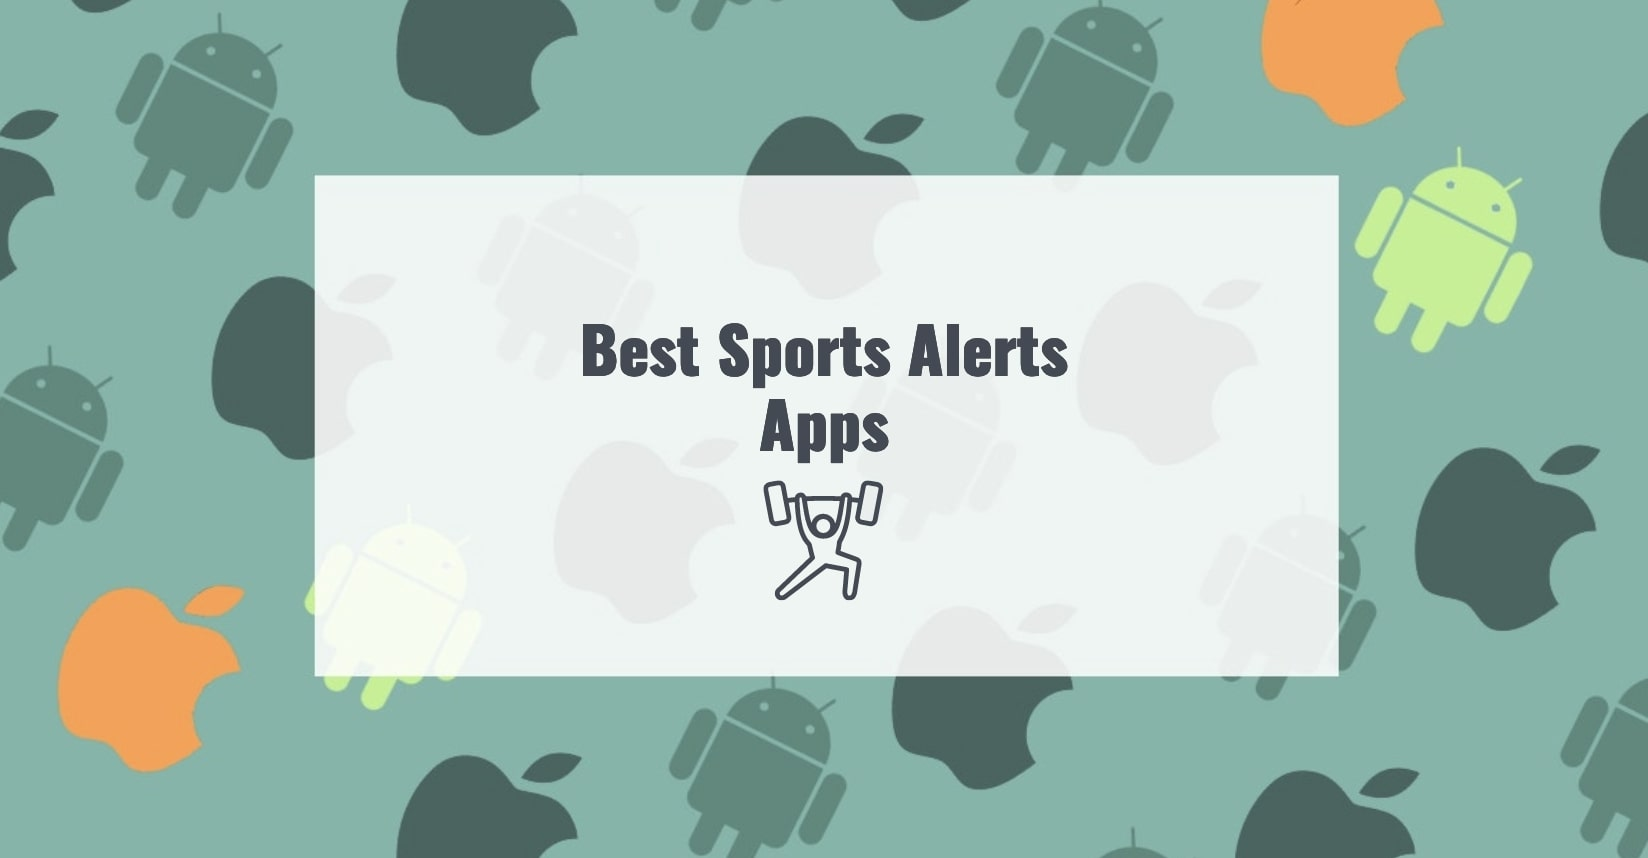 Best Sports Alerts Apps